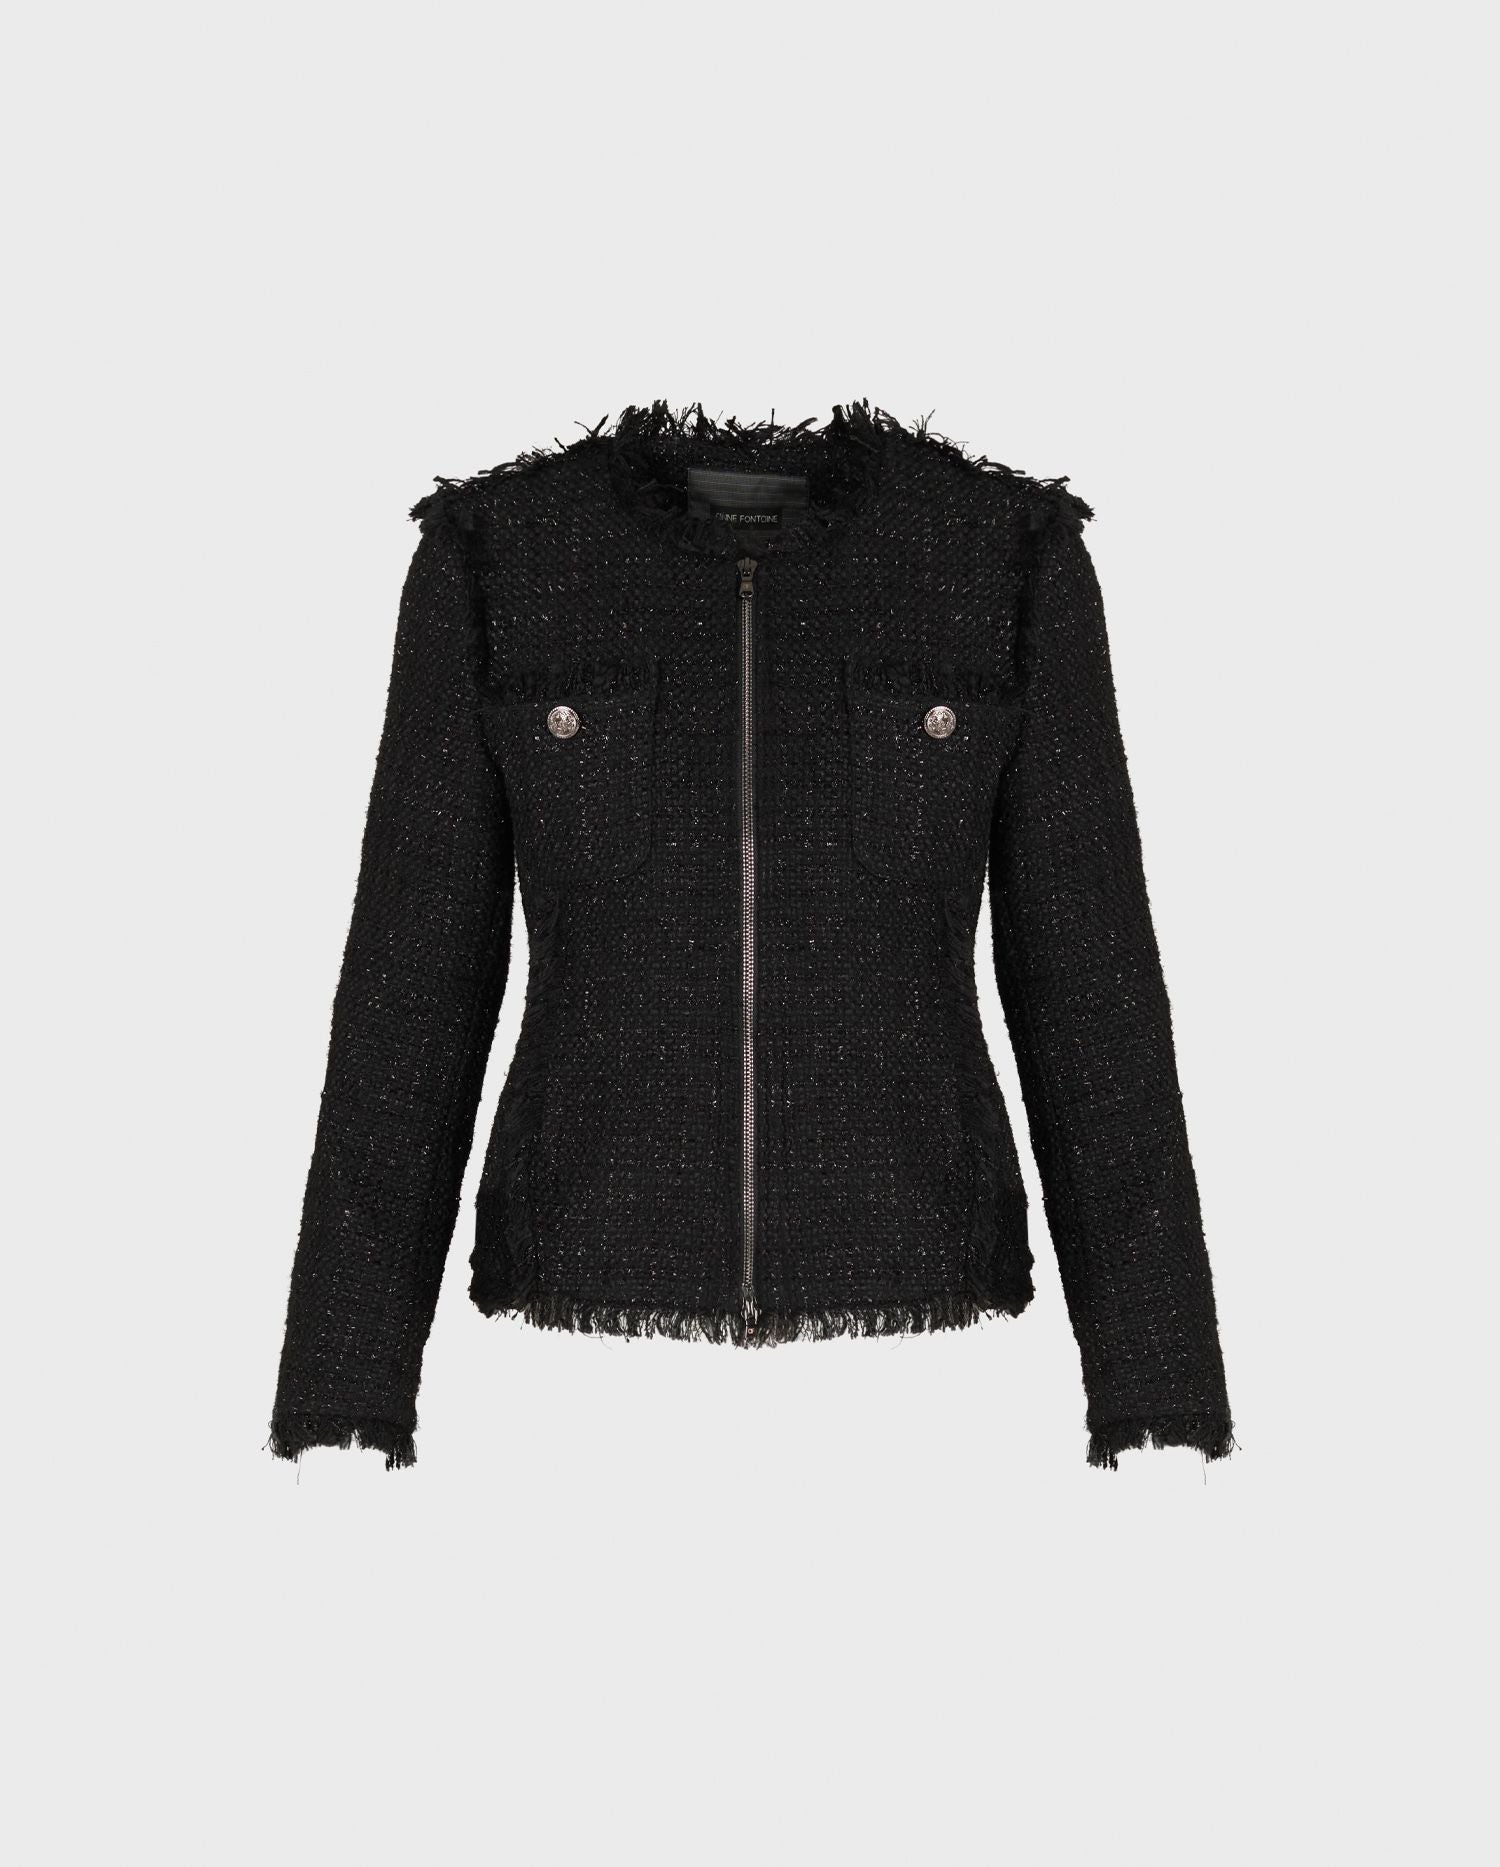 The VALSE black tweed jacket will see you through the season is looks of grace and effortless chic